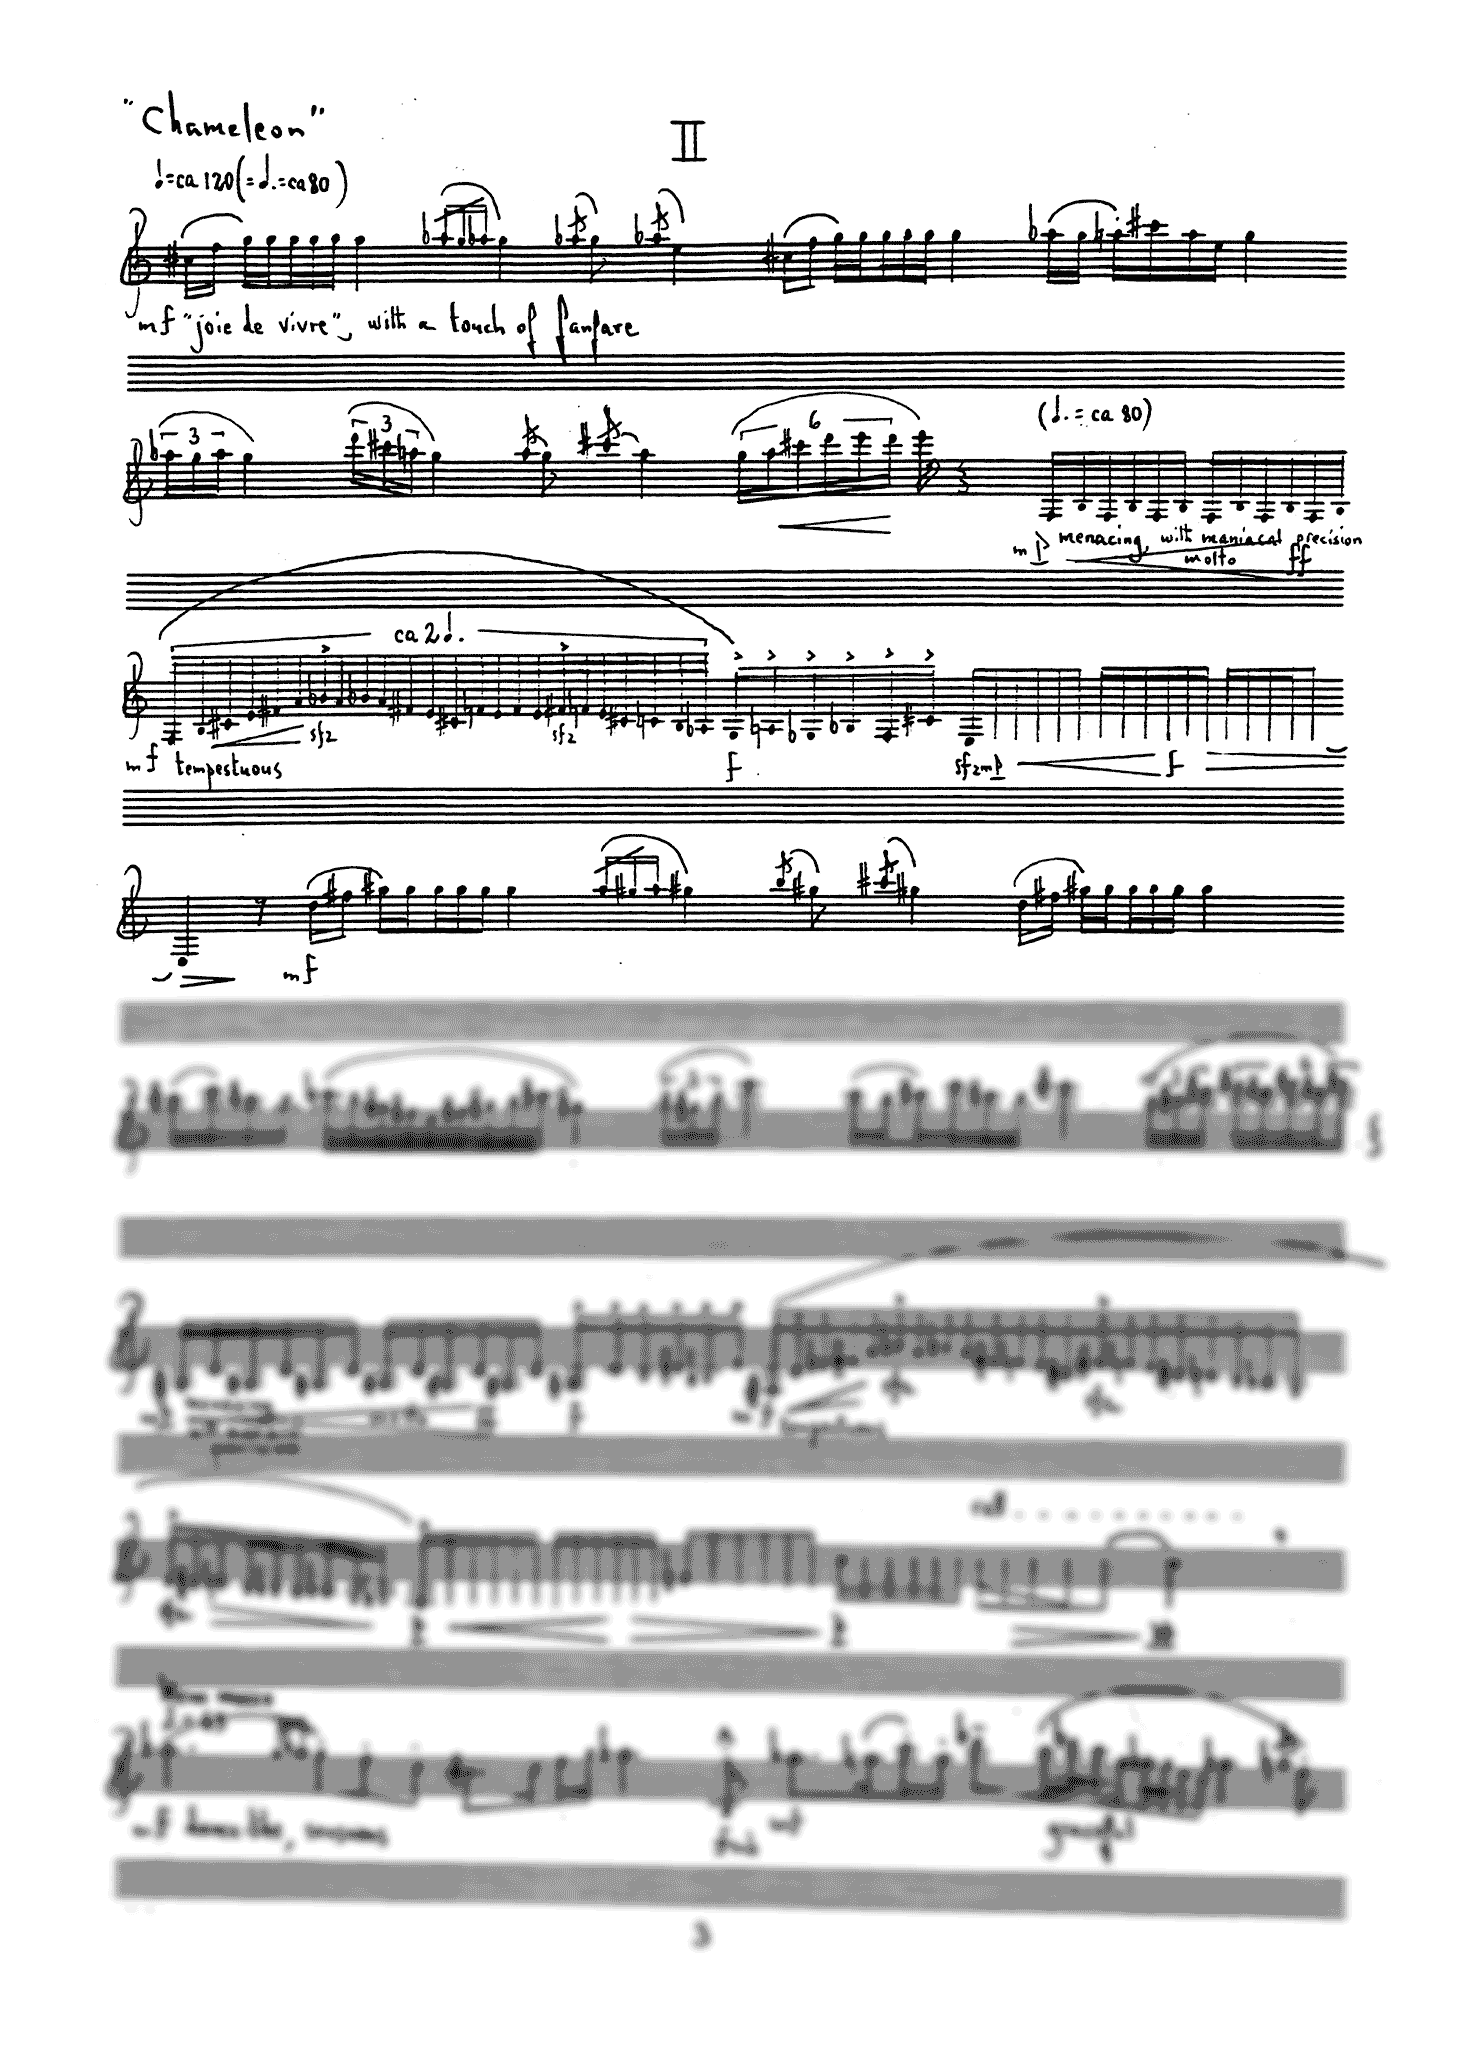 Three Scenes for Clarinet - Movement 2